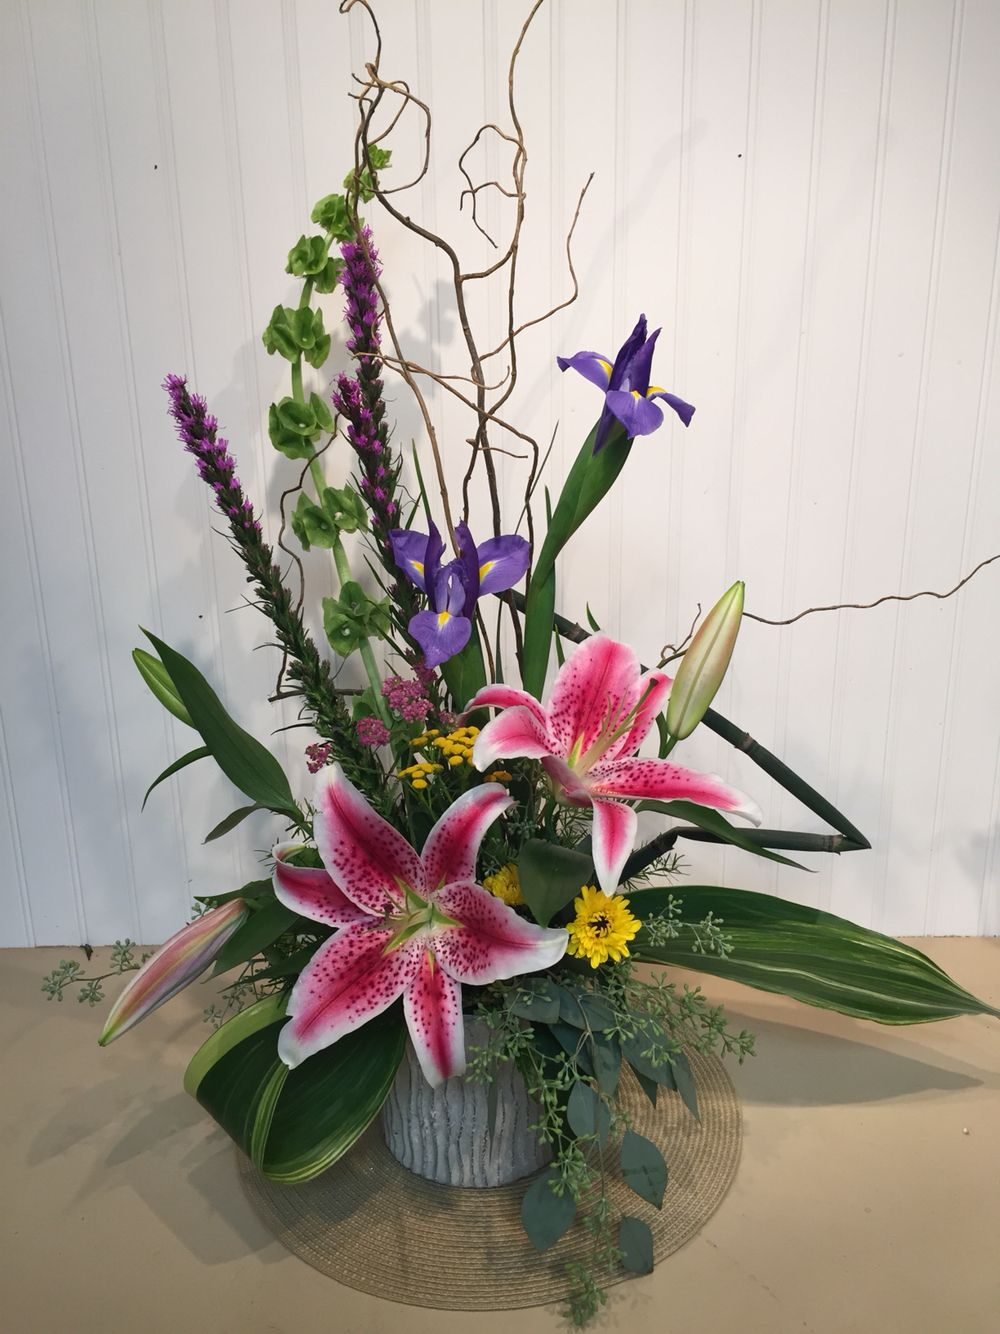 A Contemporary Floral Arrangement With Stargazer Lilies And Iris